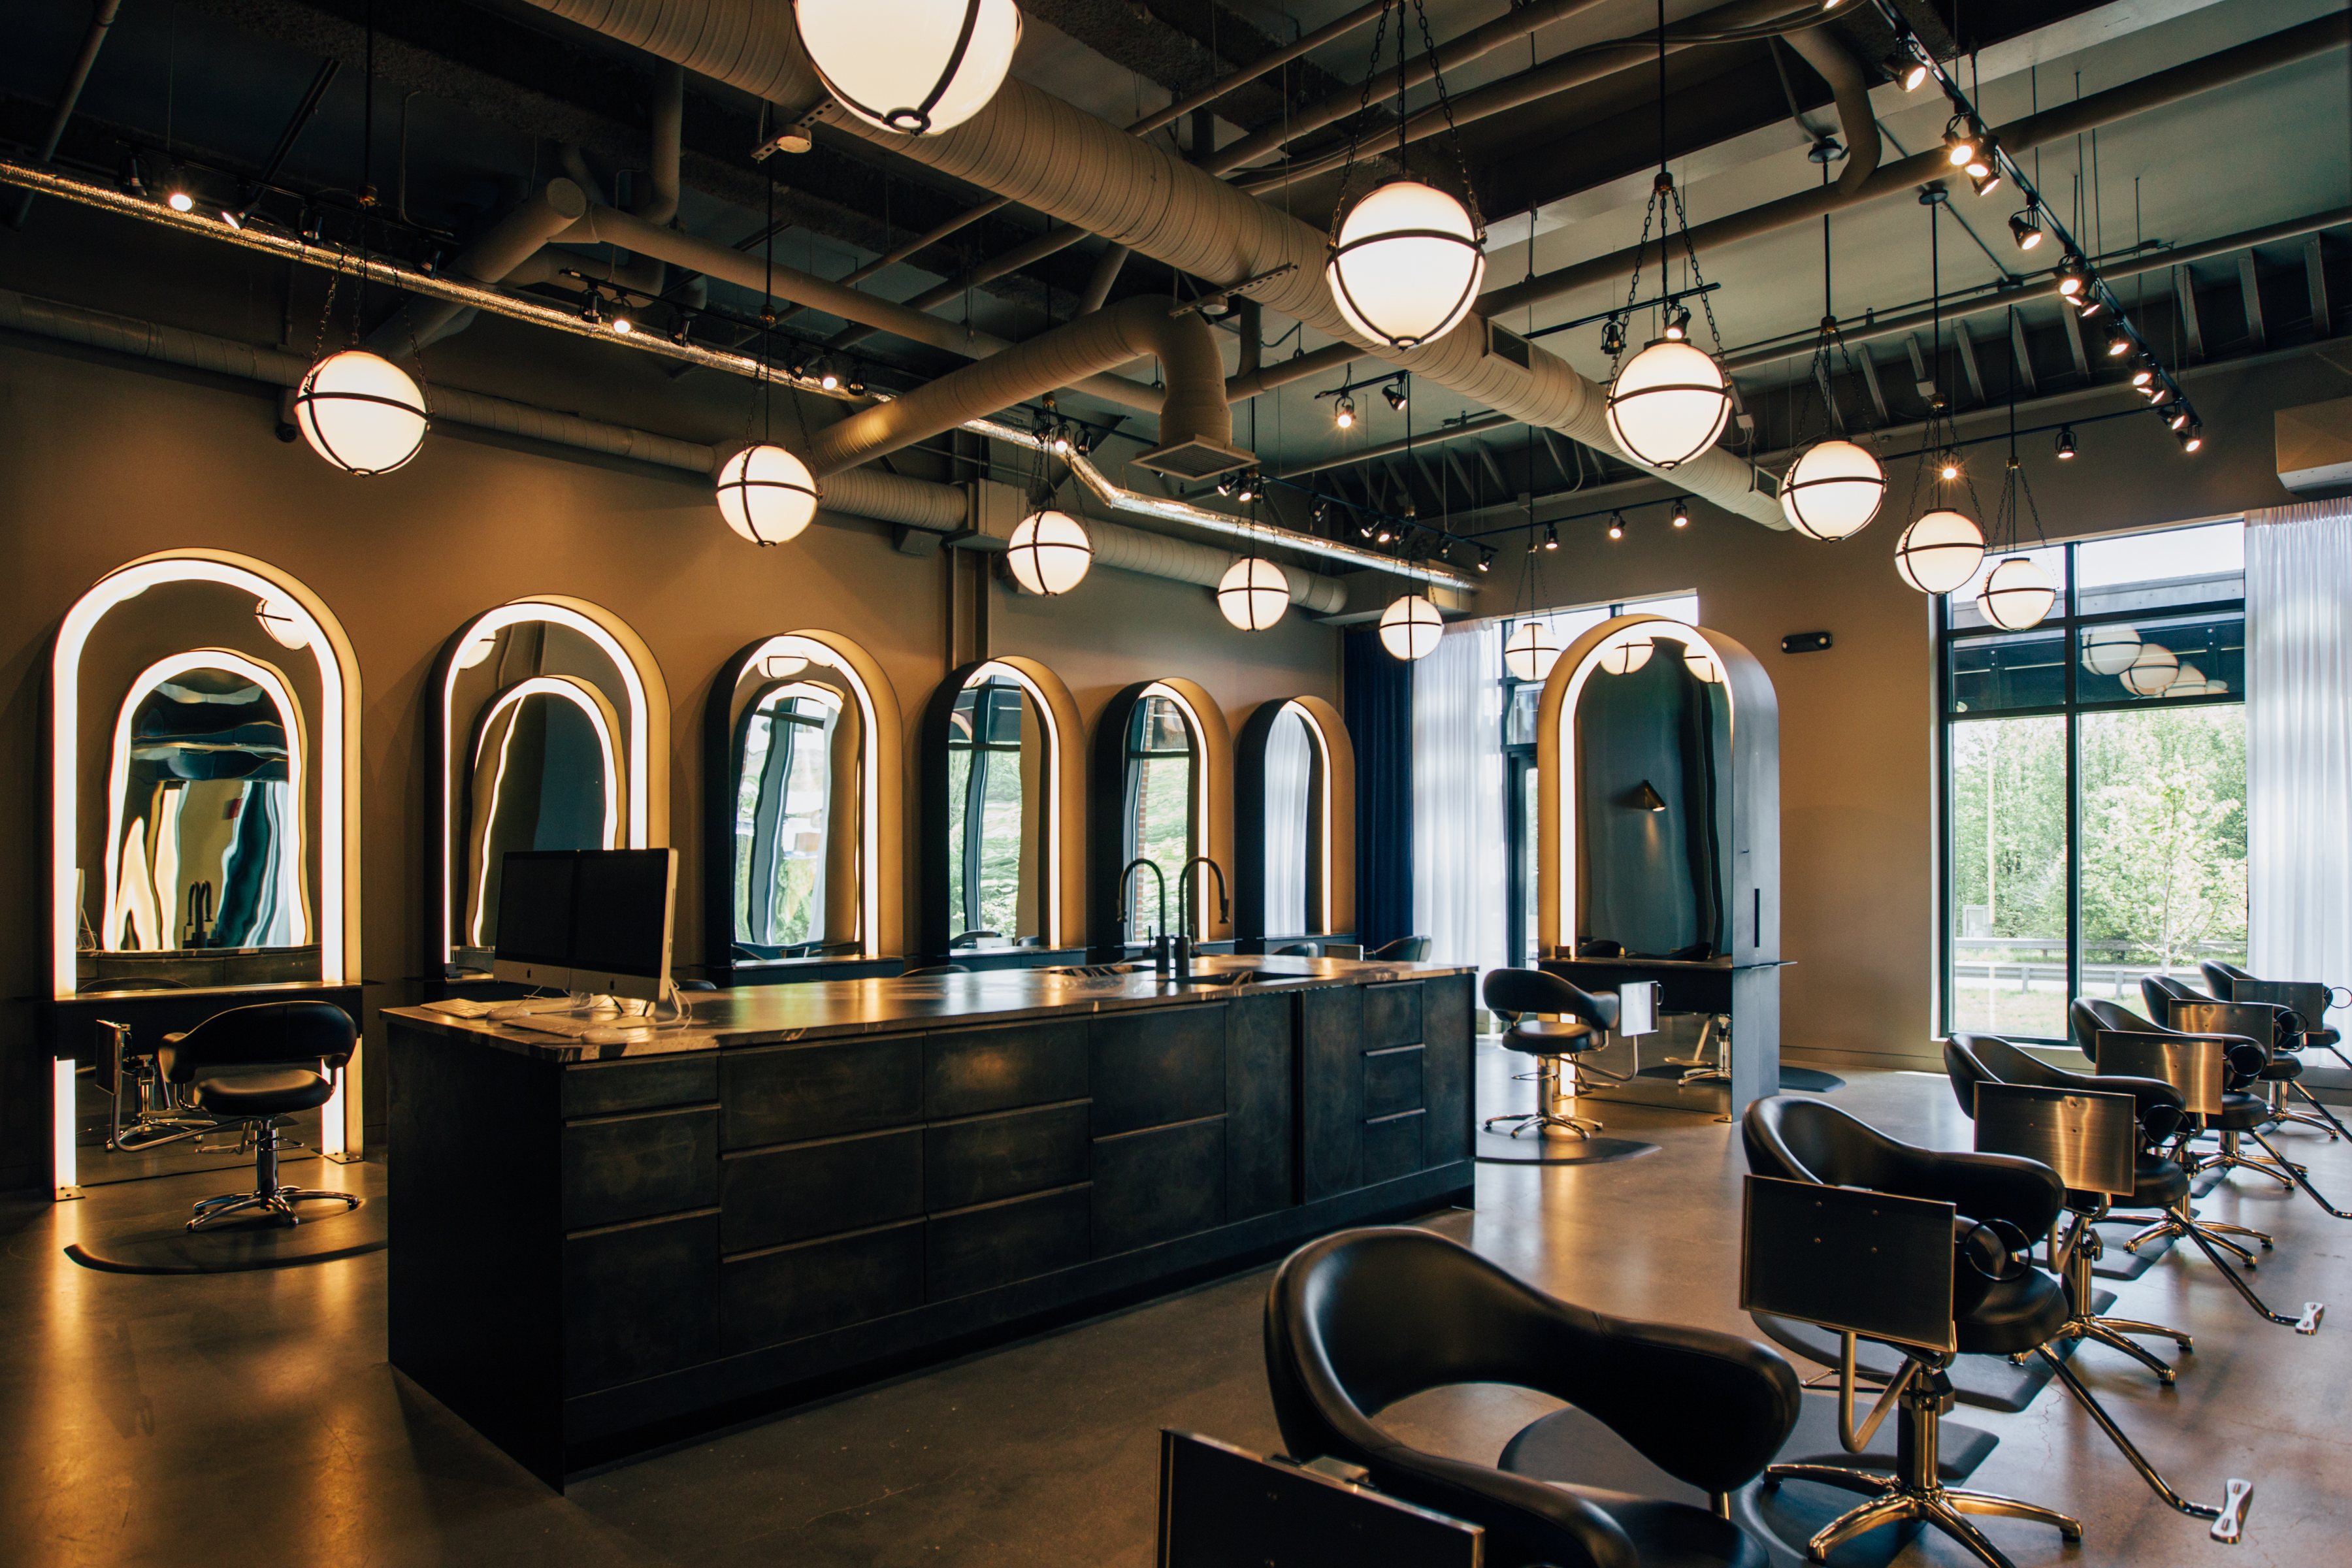 salon hair michael salons interior indianapolis styling beauty stations gmichaelsalon indiana cool spa unisex